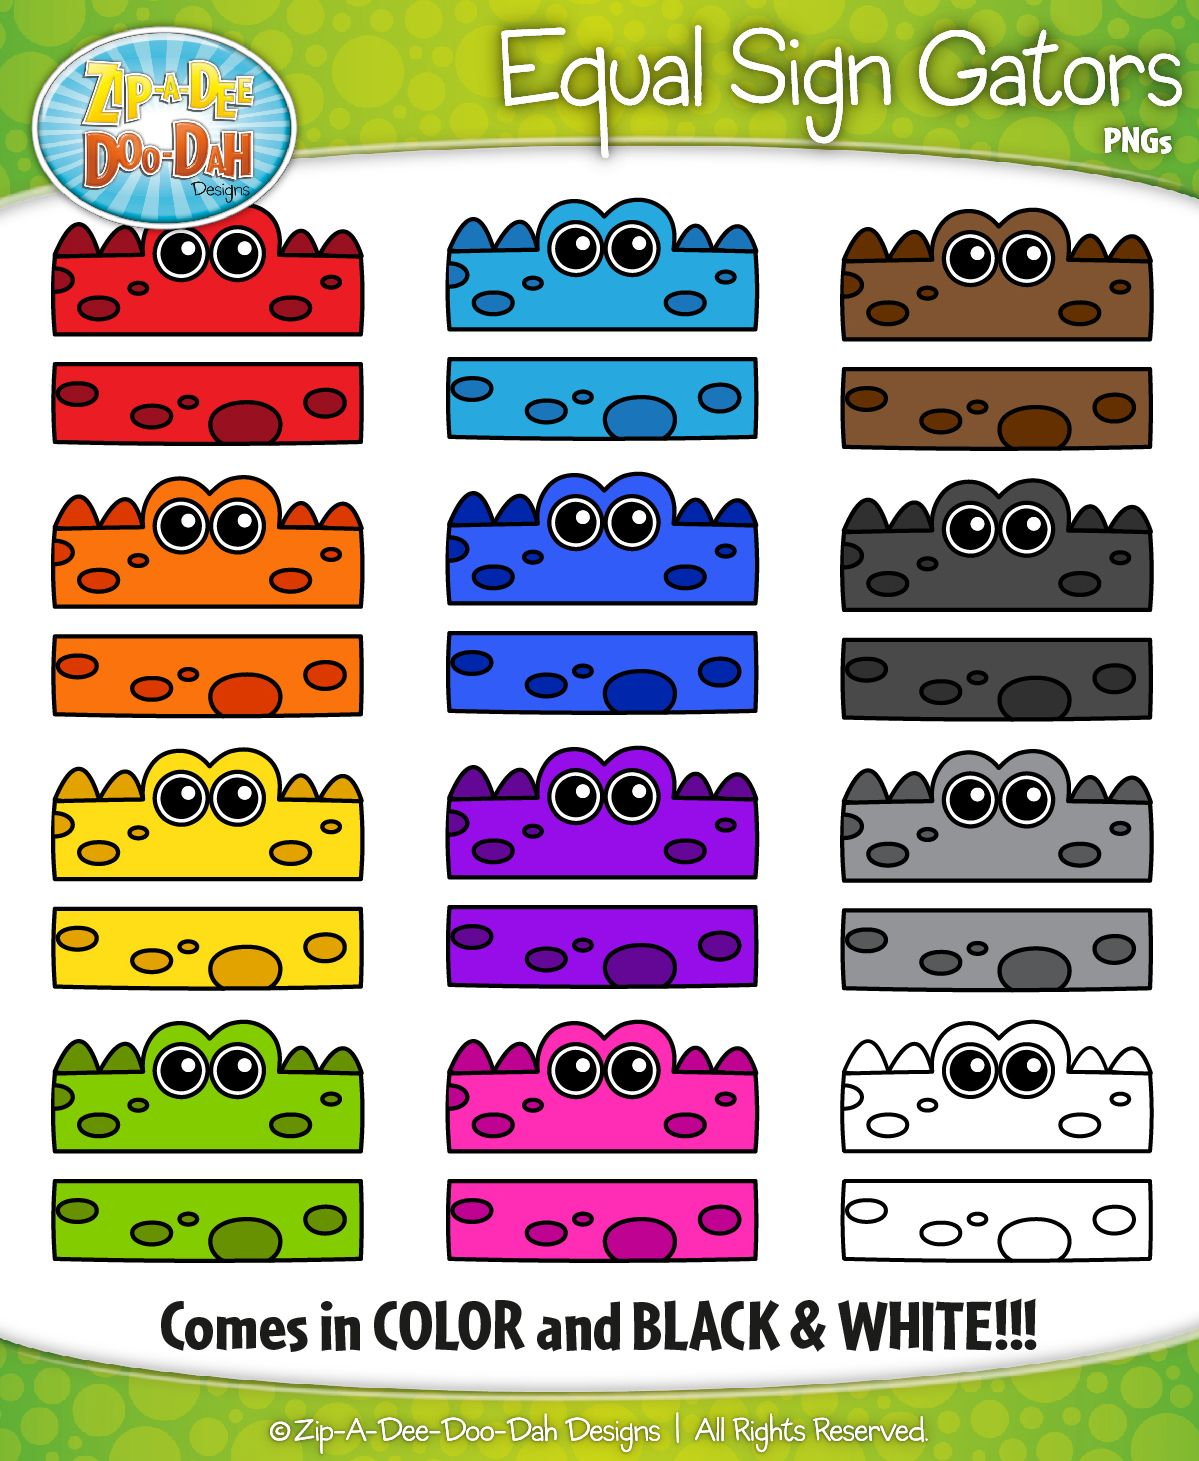 medium resolution of rainbow equal sign gator characters clipart includes 12 graphics